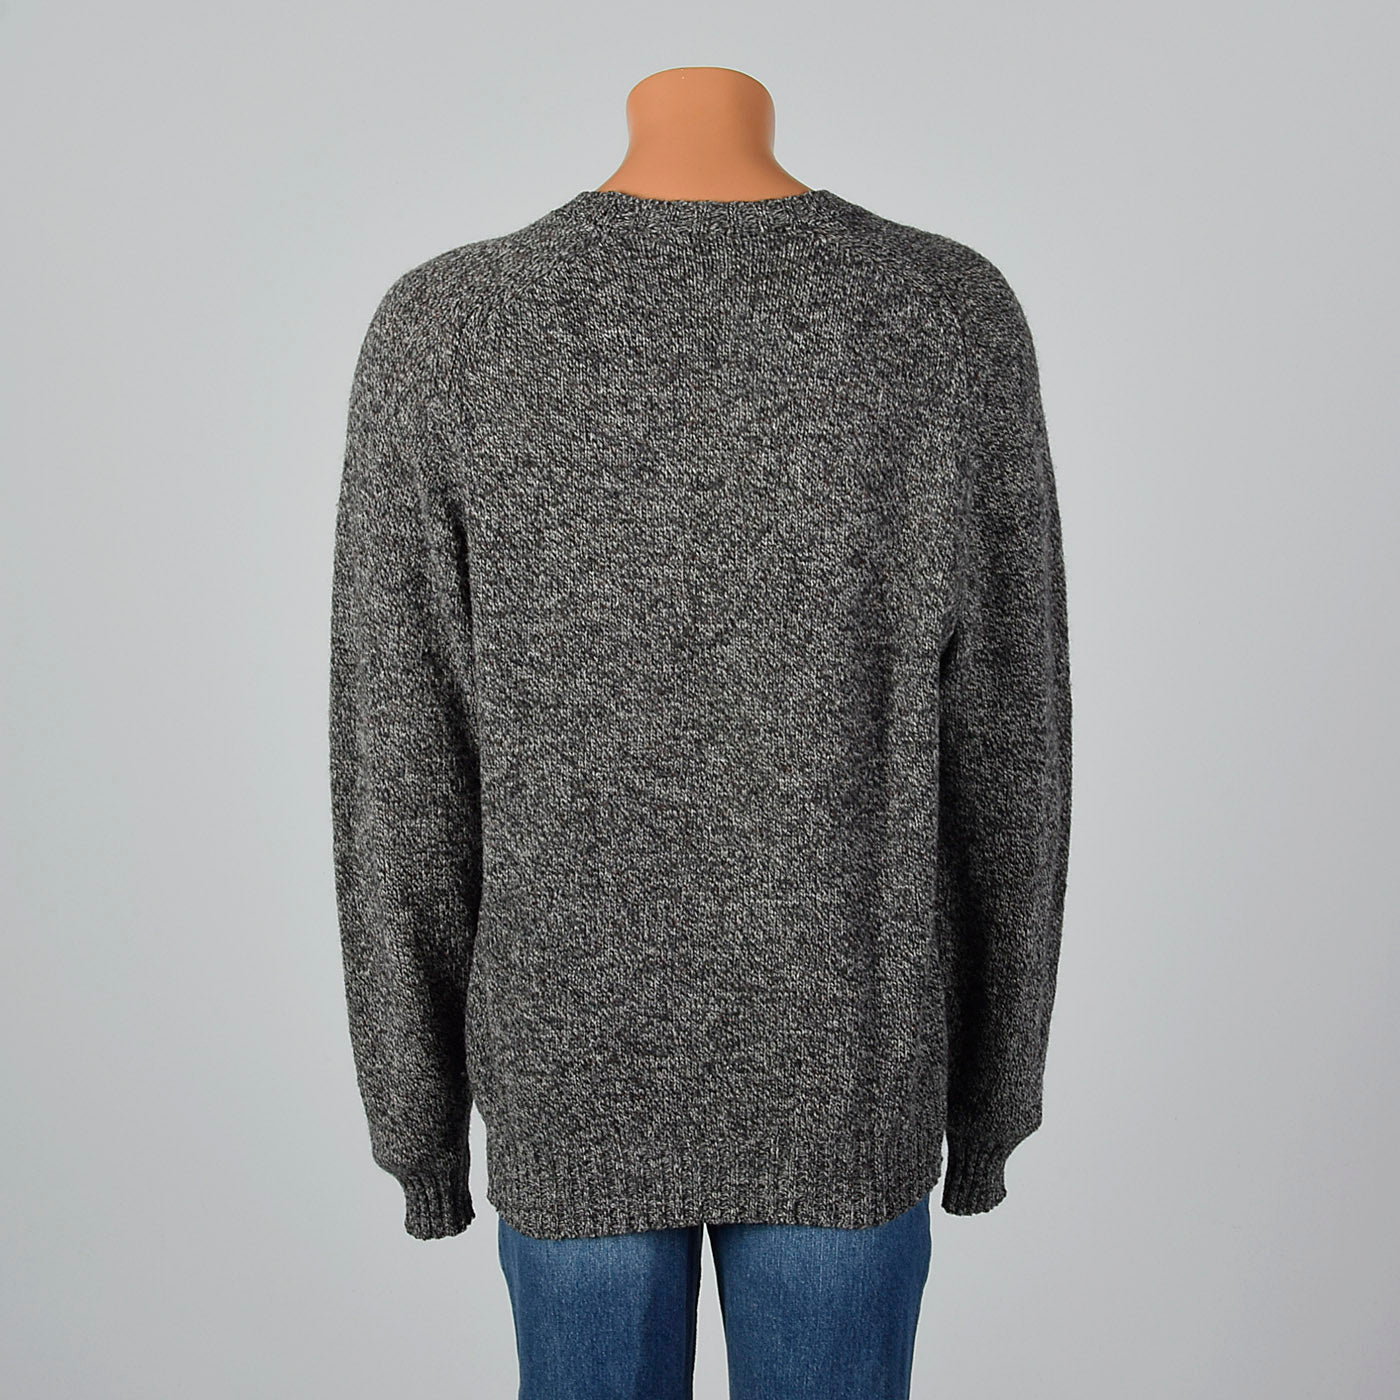 1980s Burberry Mens Gray Knit Sweater